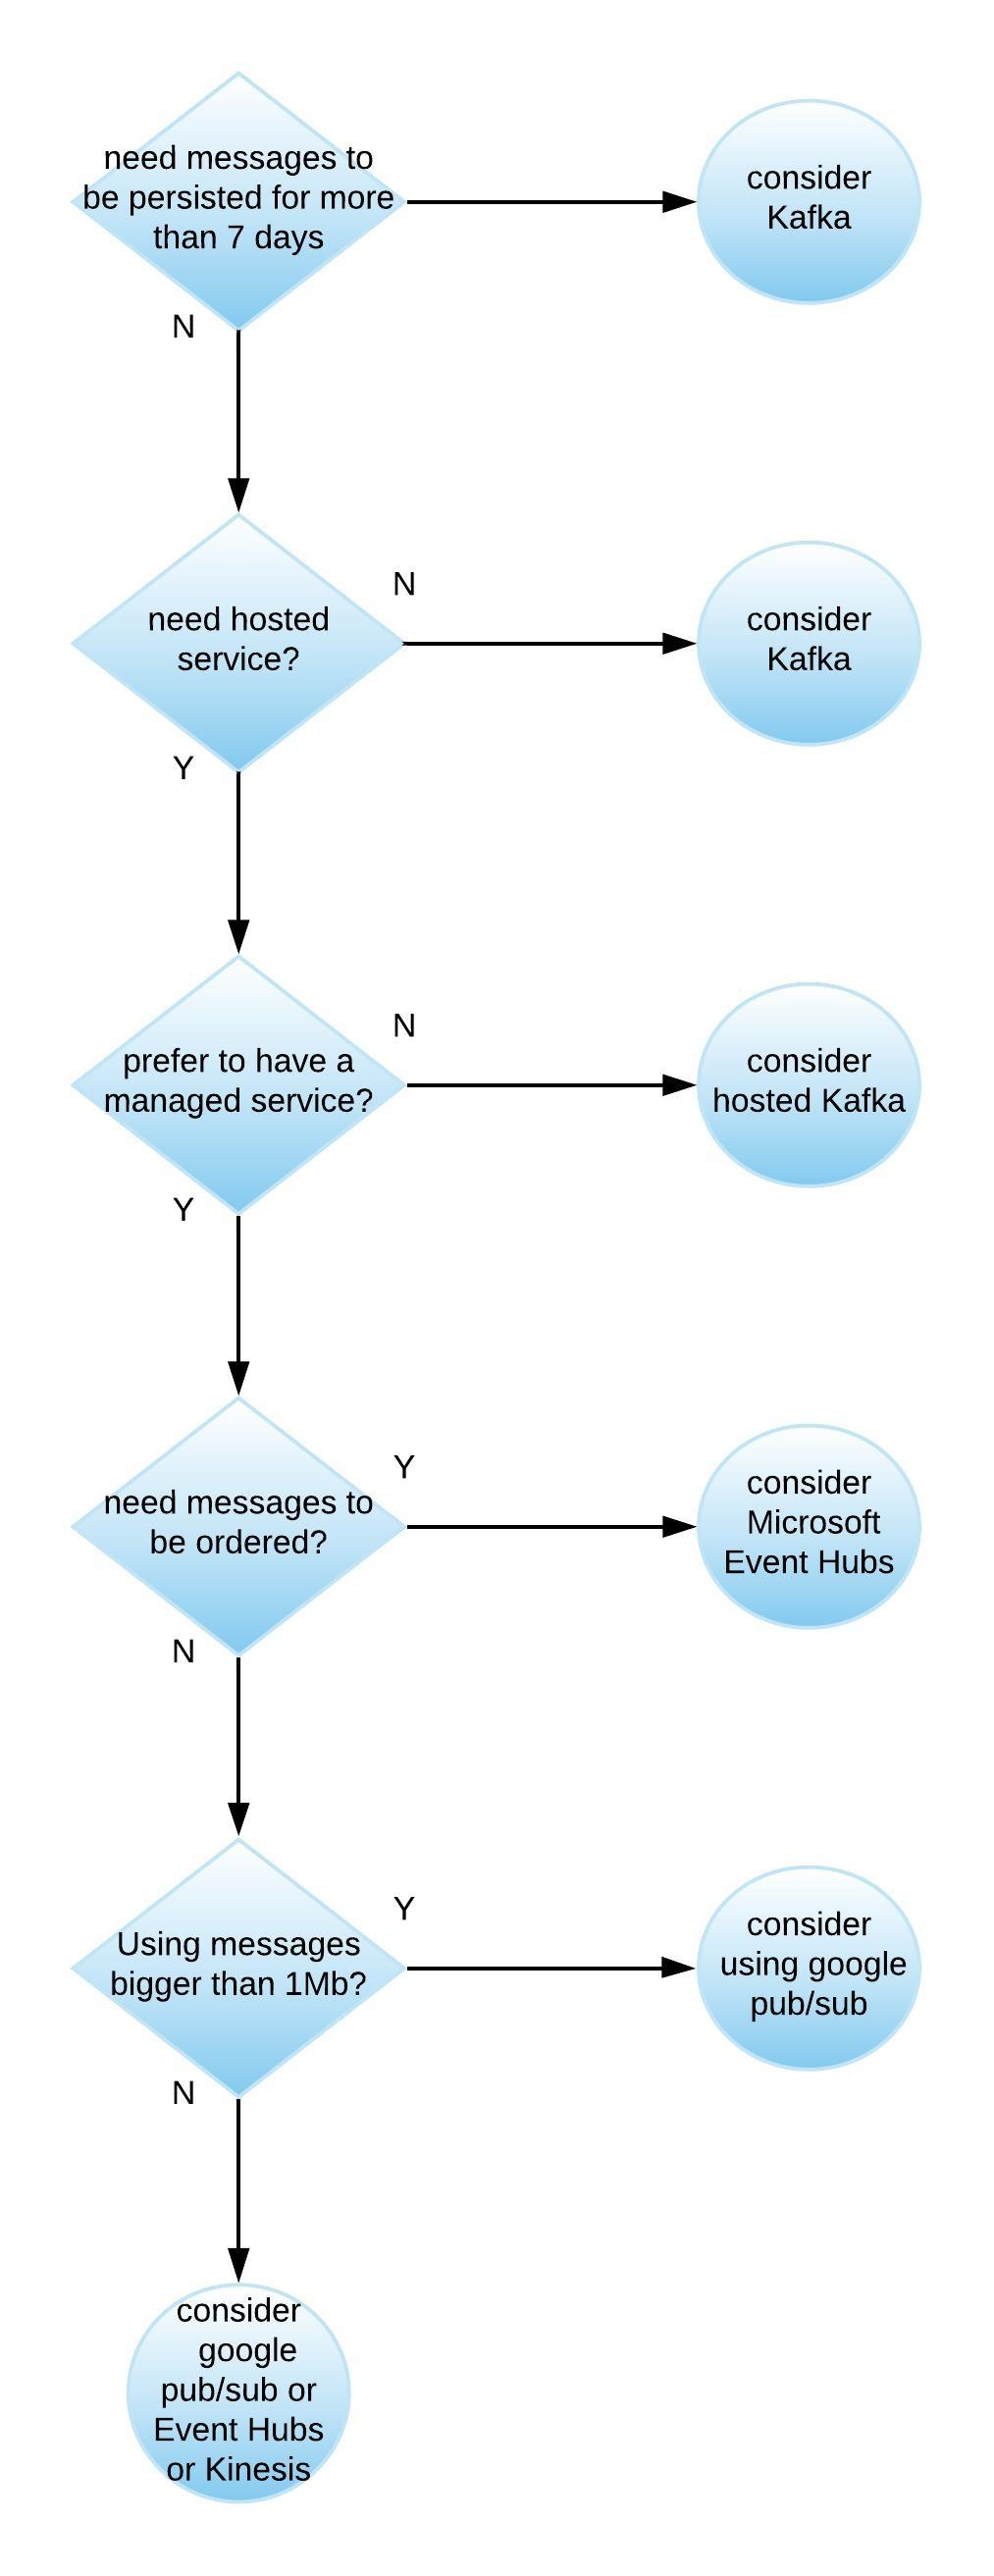 Comparing Apache Kafka, Amazon Kinesis, Microsoft Event Hubs